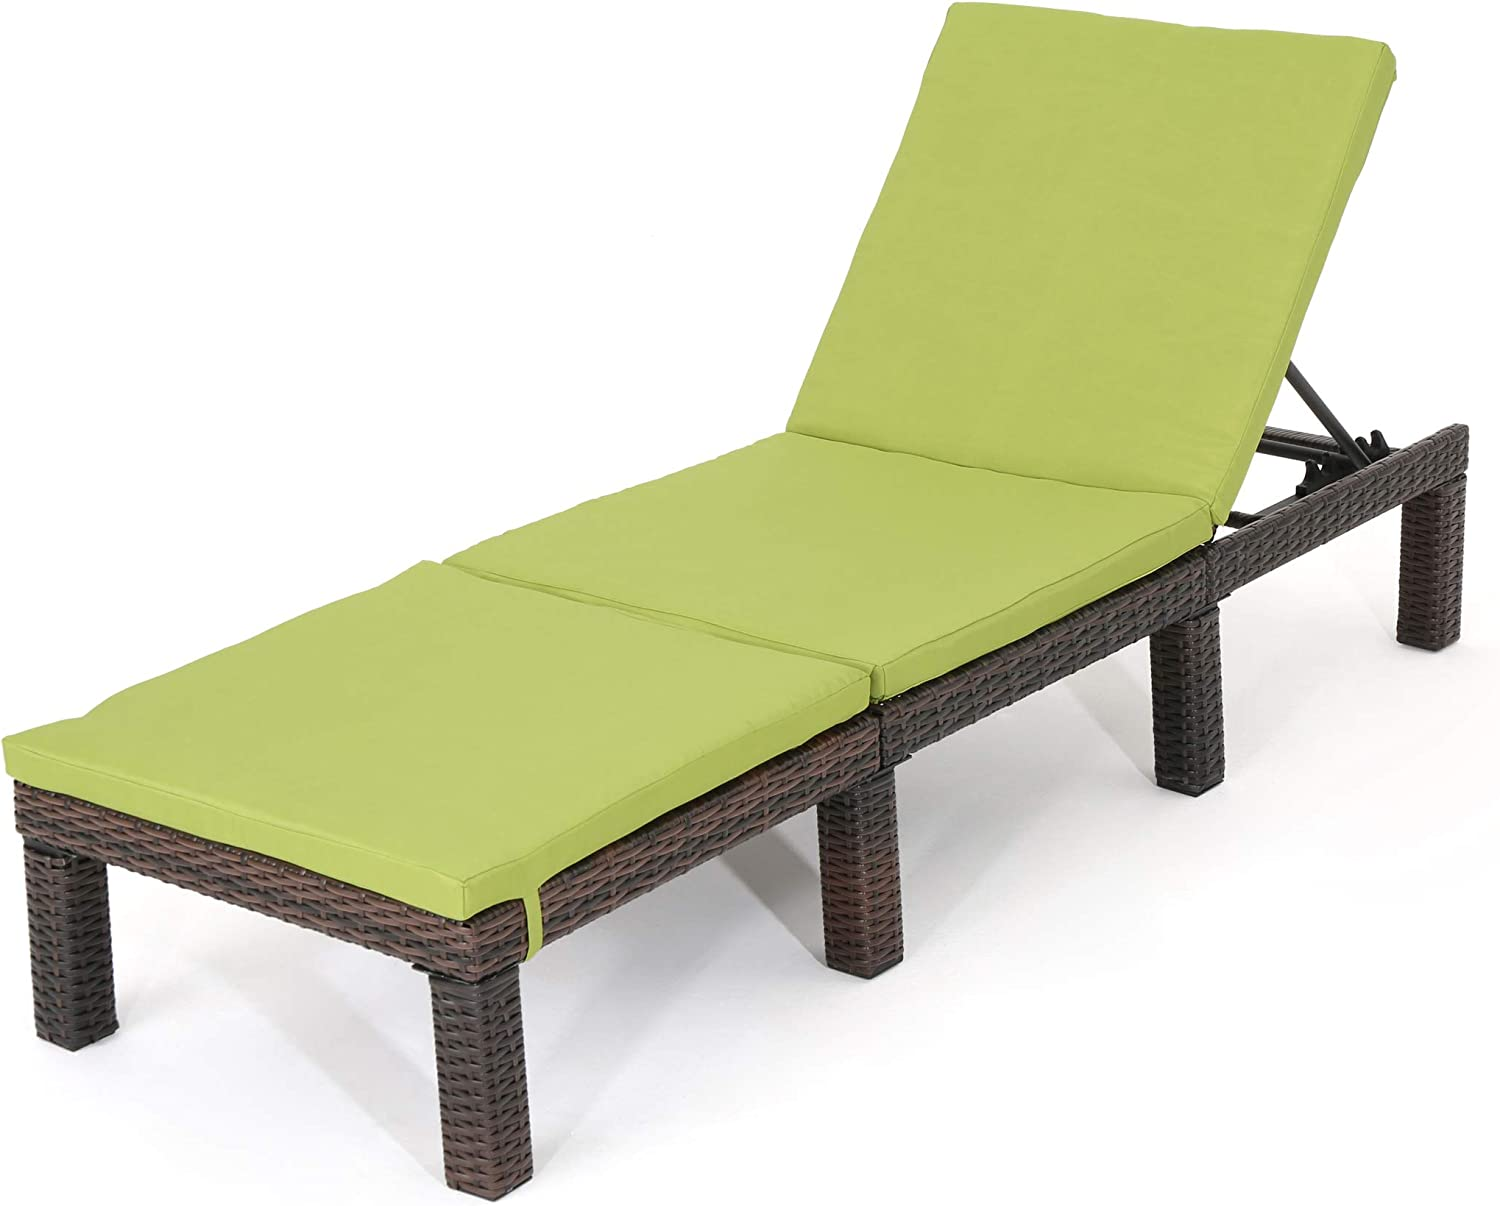 Christopher Knight Home Jamaica Outdoor Wicker Chaise Lounge with Water Resistant Cushion, Multibrown / Green